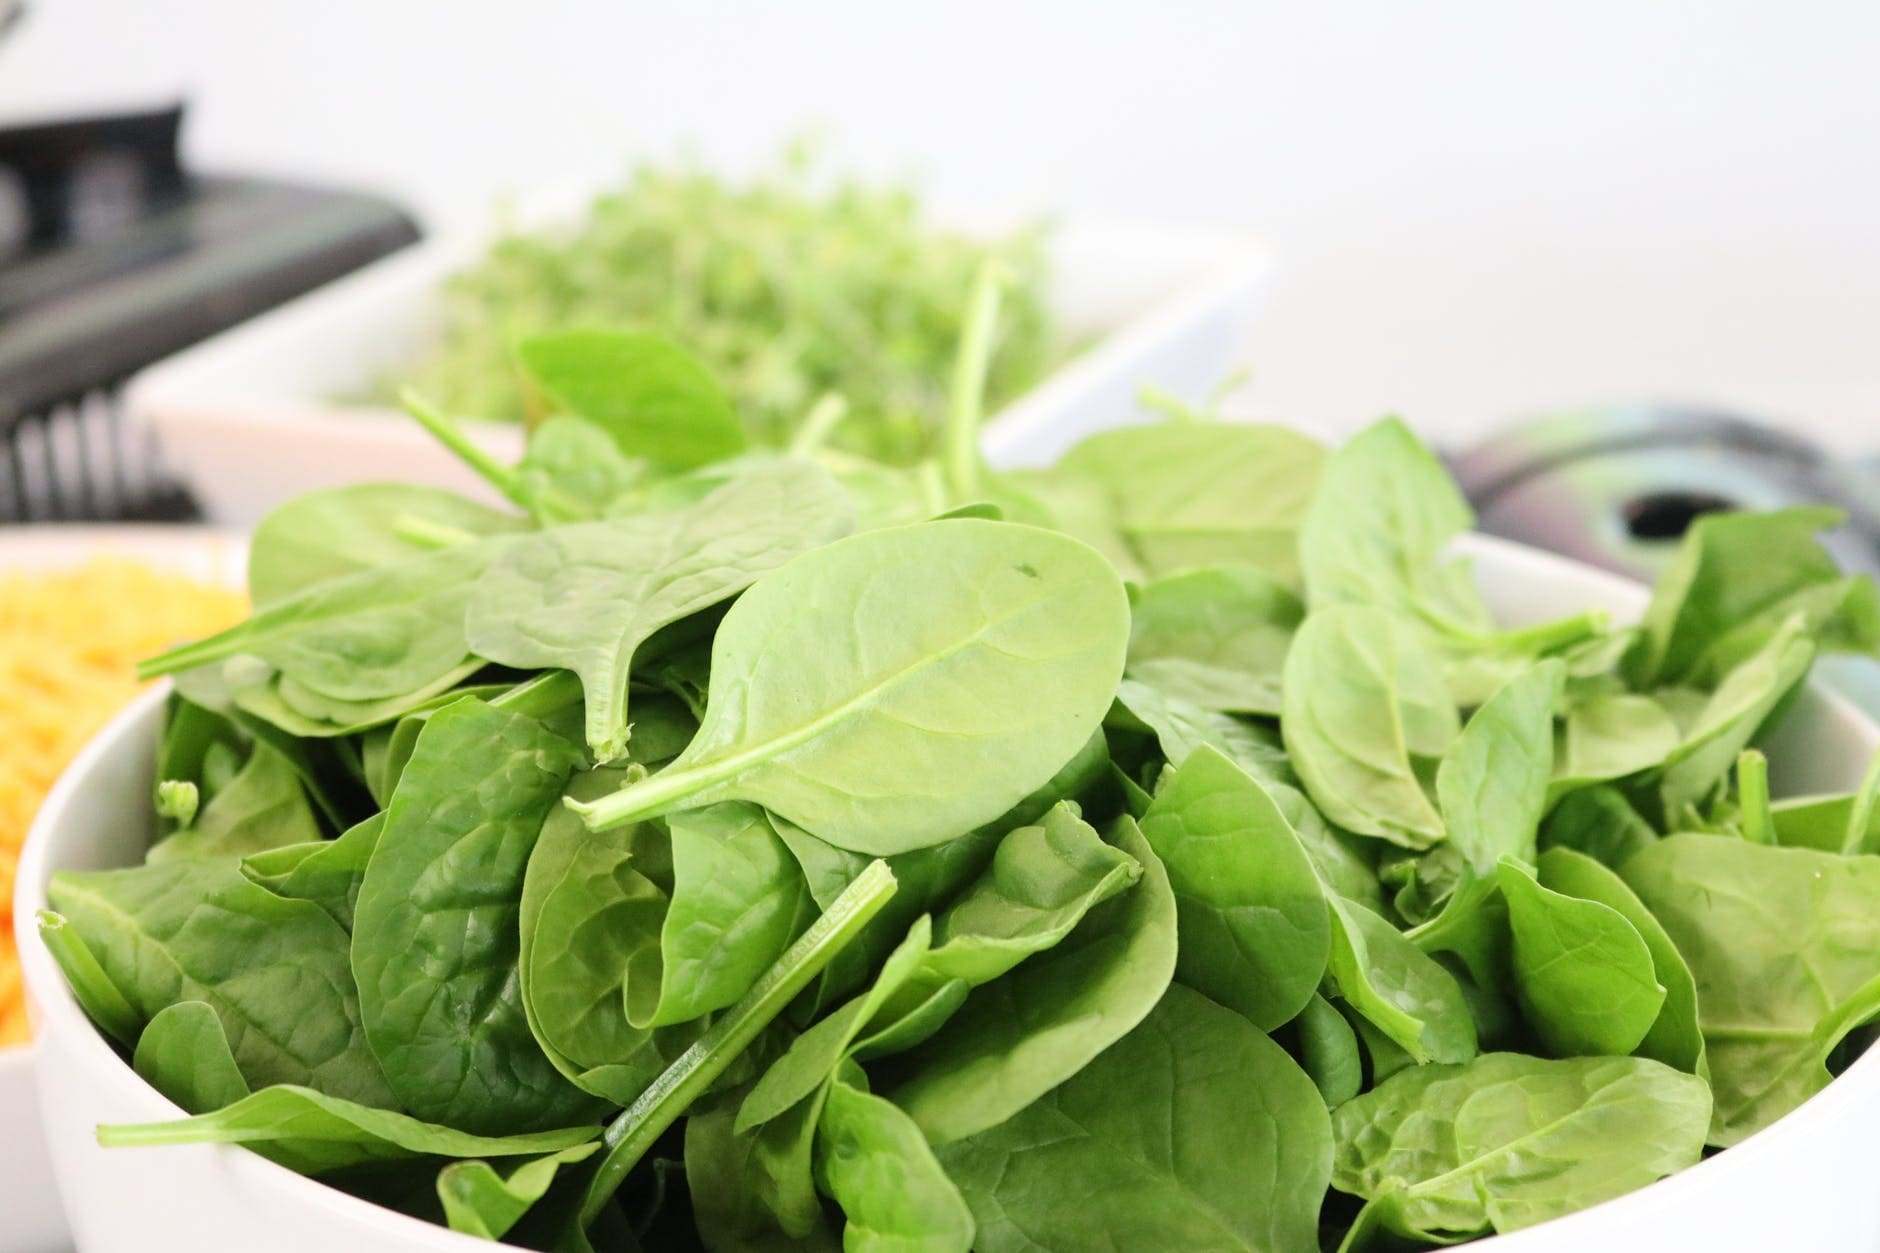 How to make a salad of arugula with mushrooms